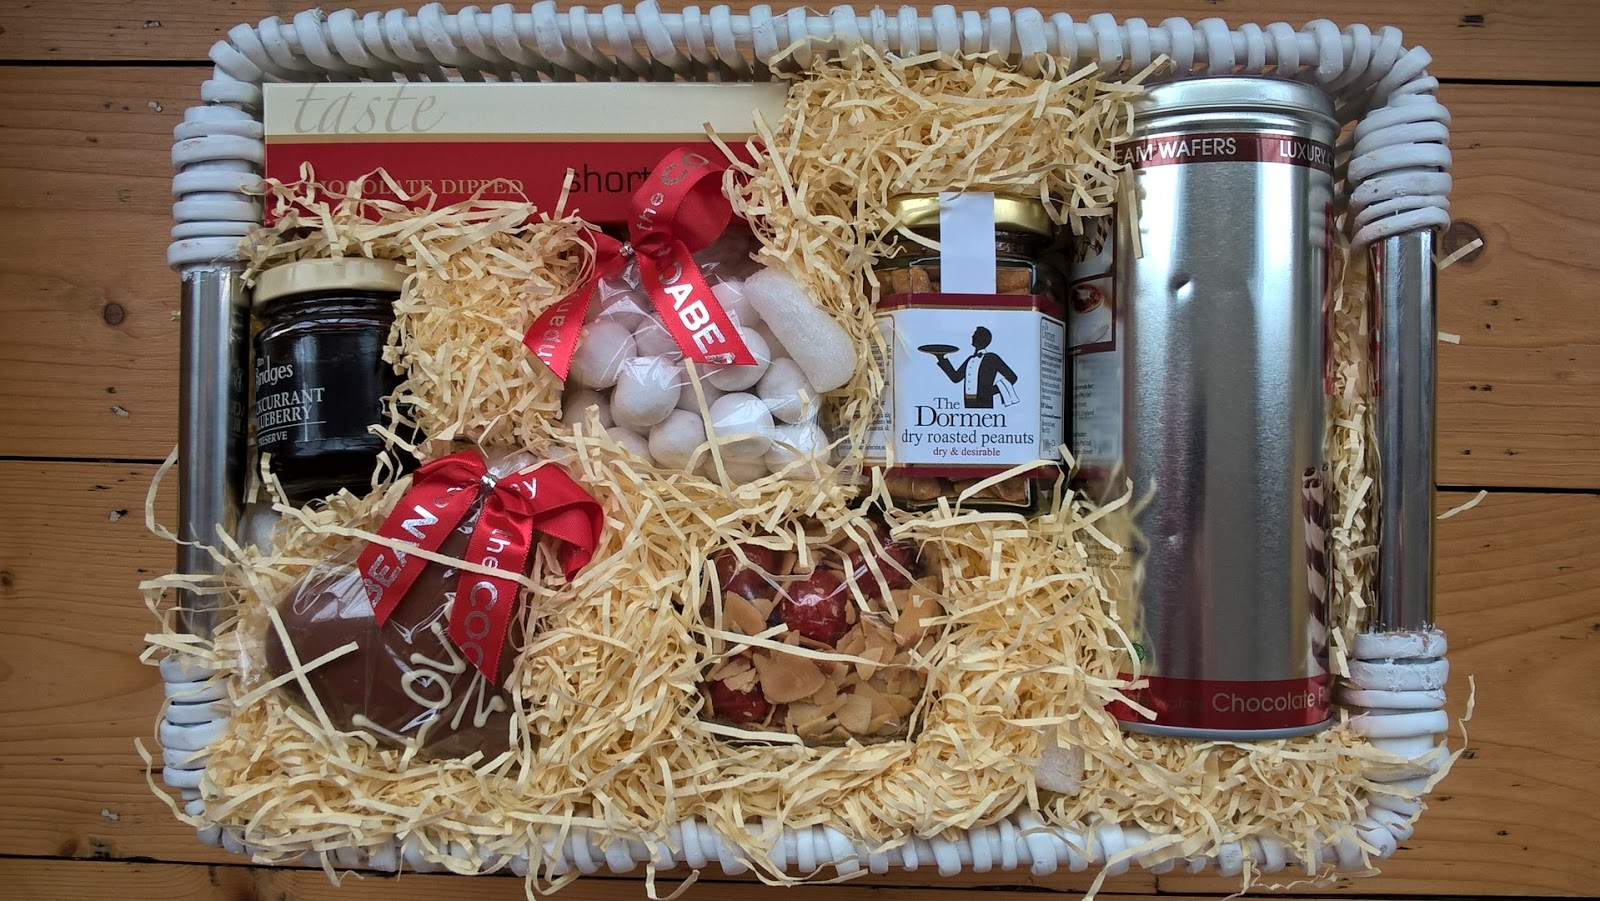 Win A Sparkling Romance Hamper From Spicers Of Hythe